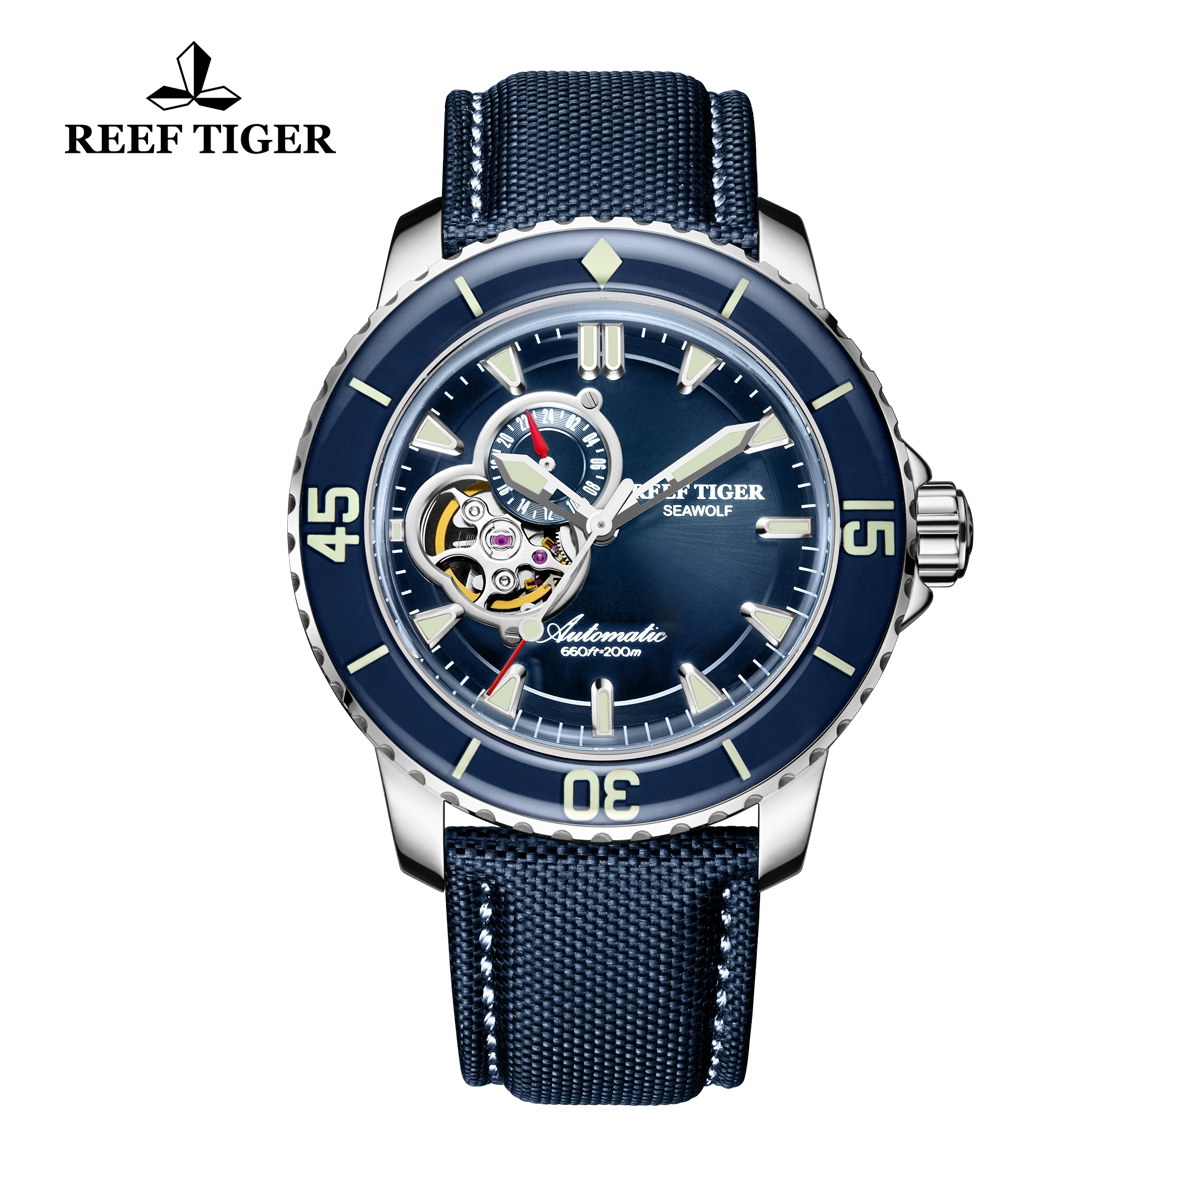 Reef Tiger Sea Wolf Dress Automatic Watch Steel Black Dial Black Nylon/Leather Strap RGA3039-YLL